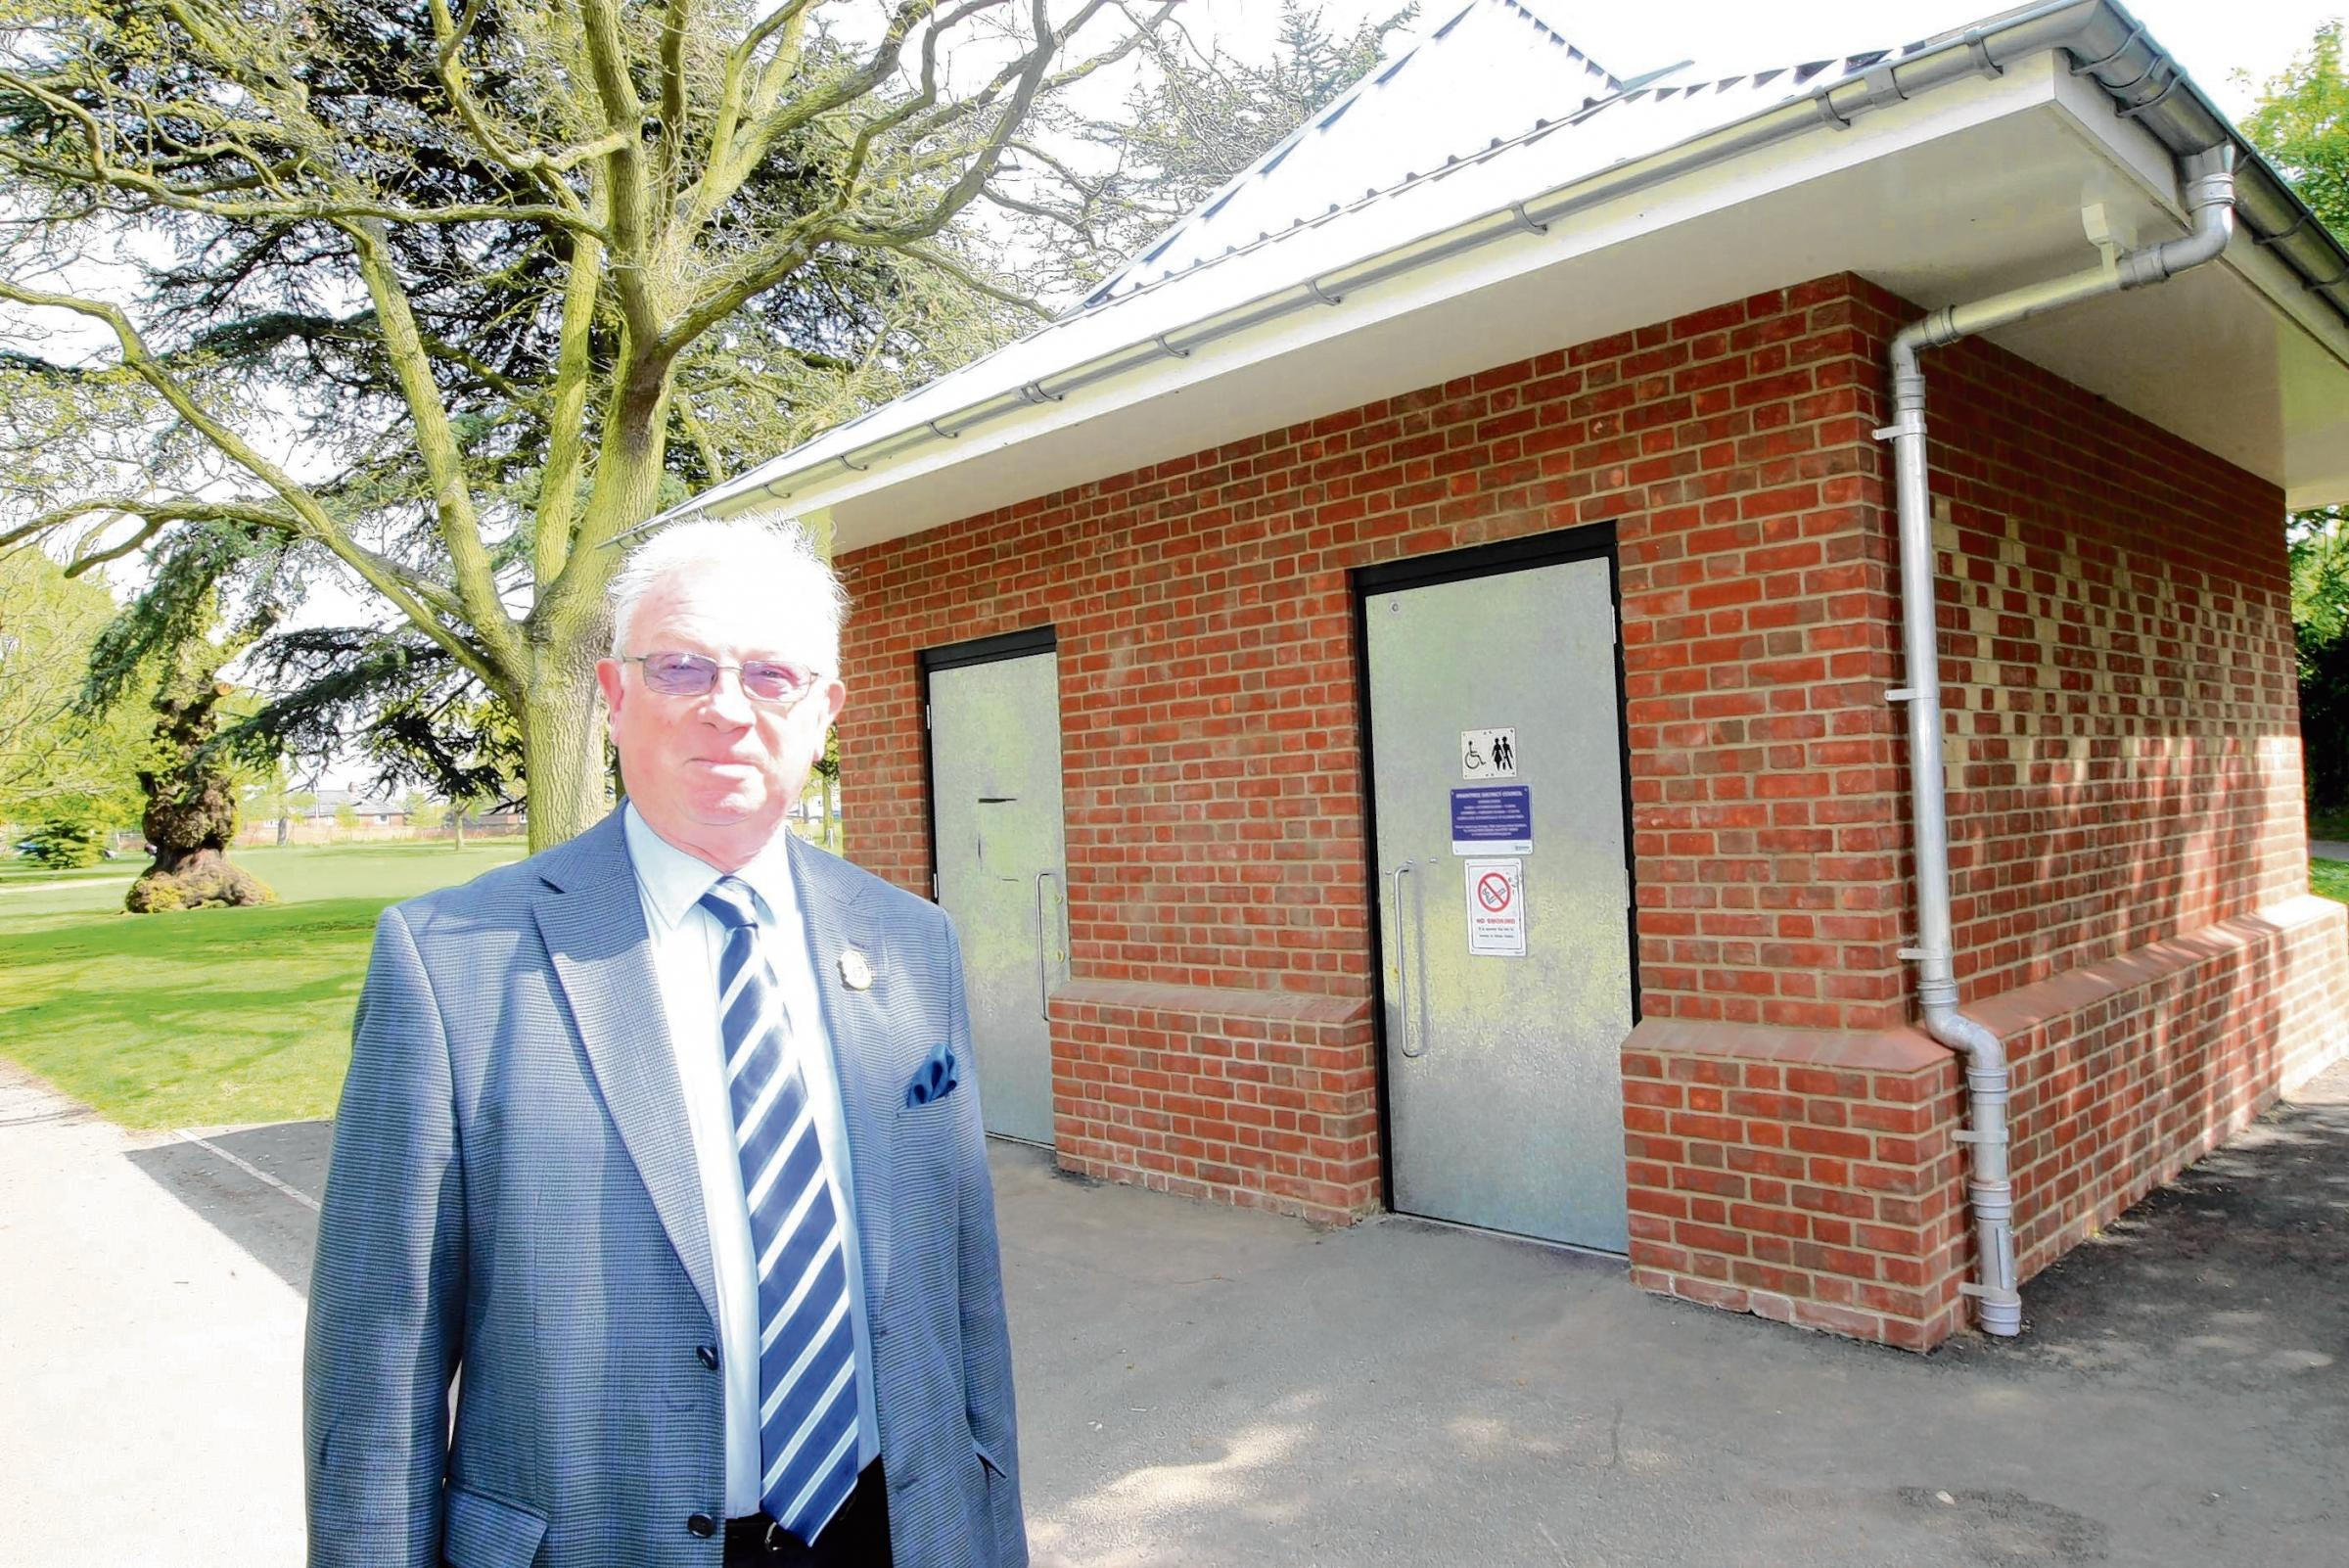 Vandals 'hell-bent' on wrecking public toilets says angry councillor